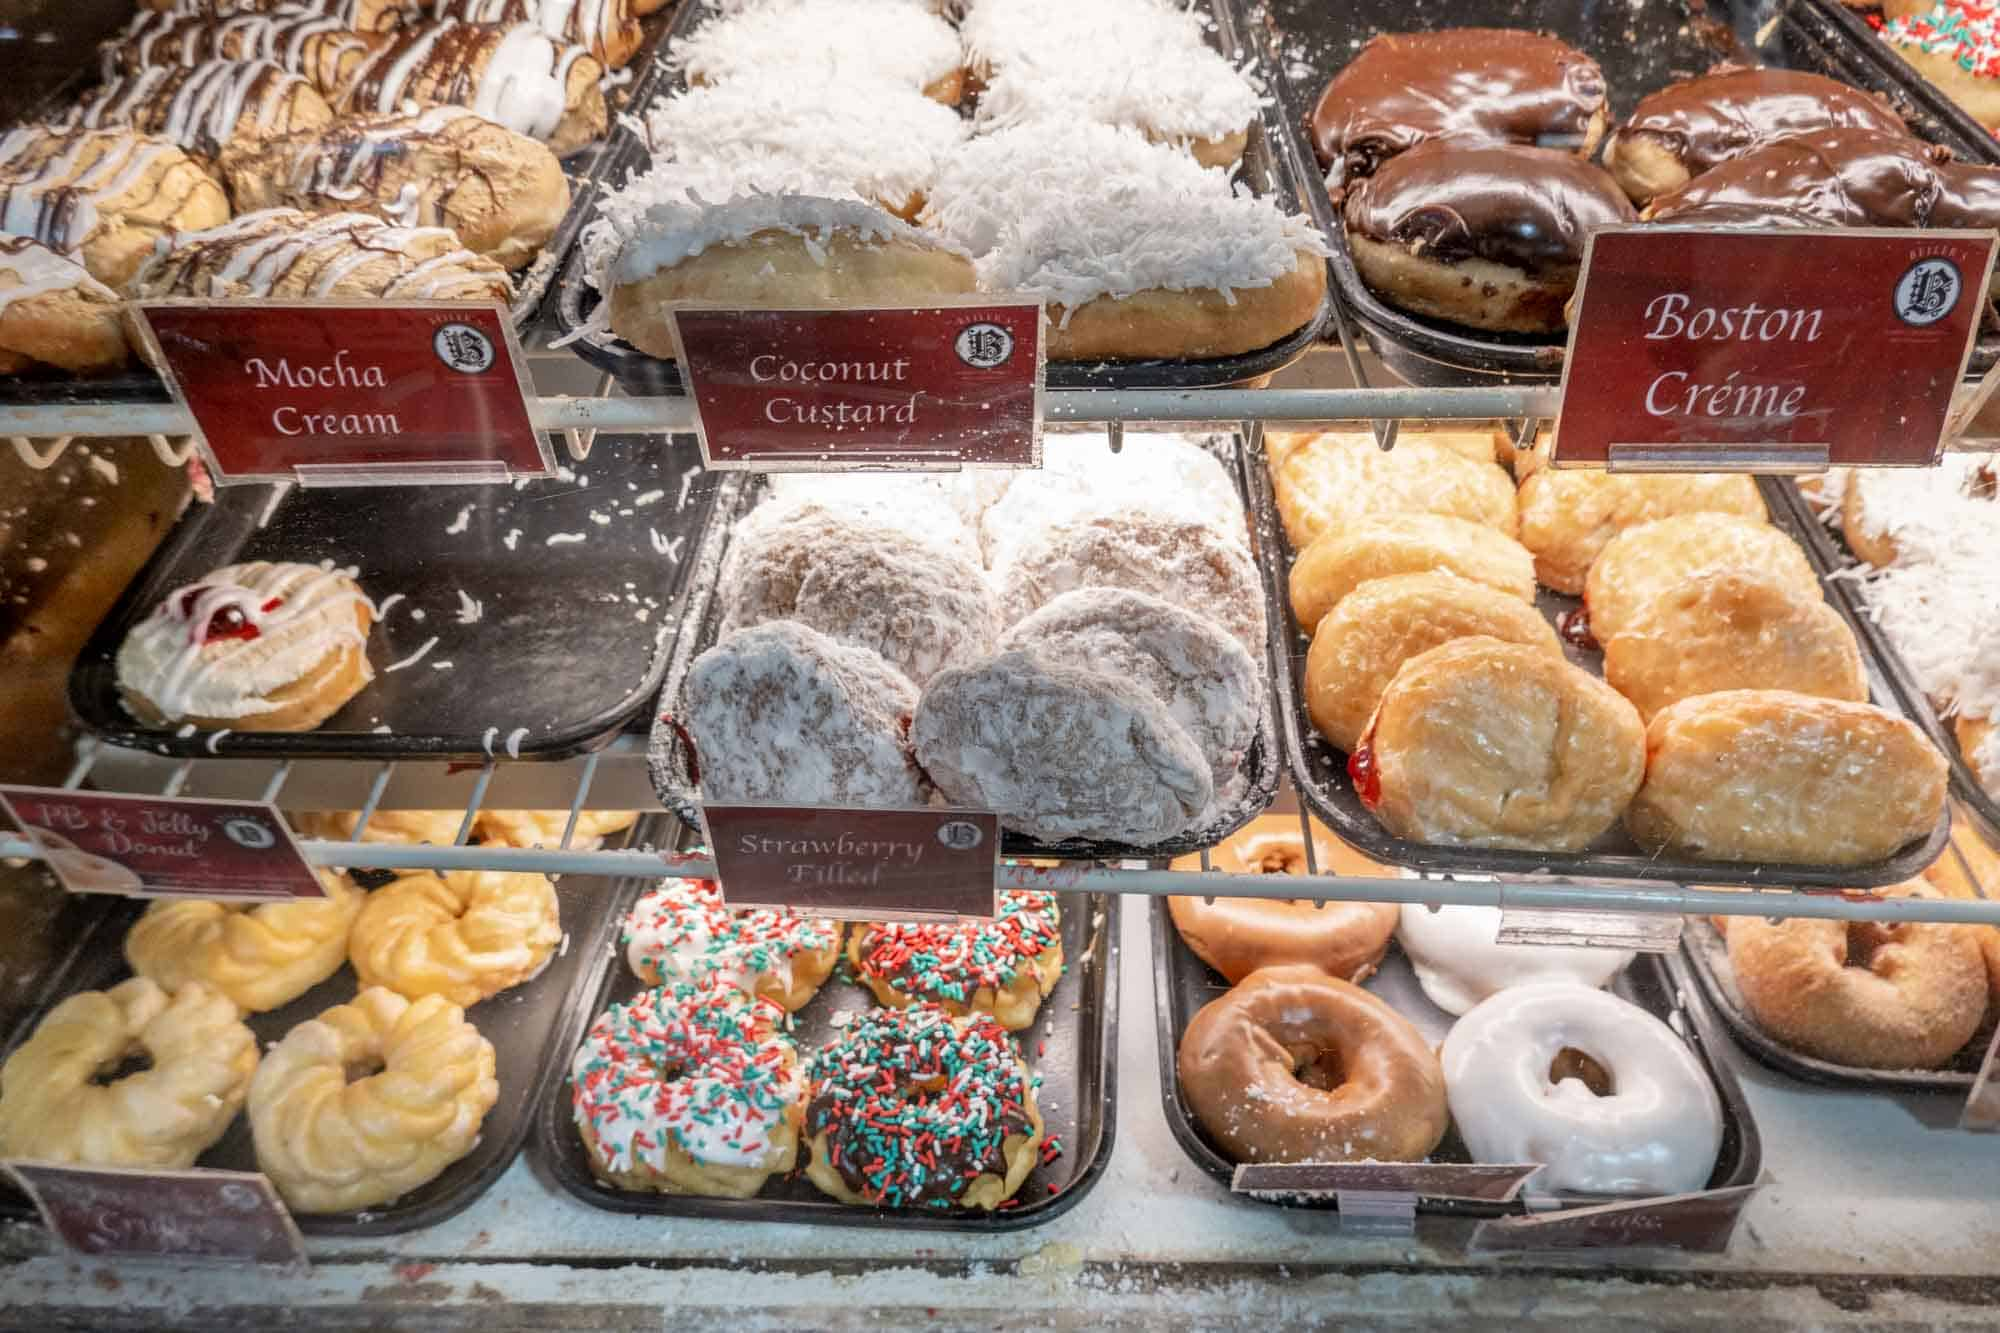 Display case filled with trays of glazed and filled donuts